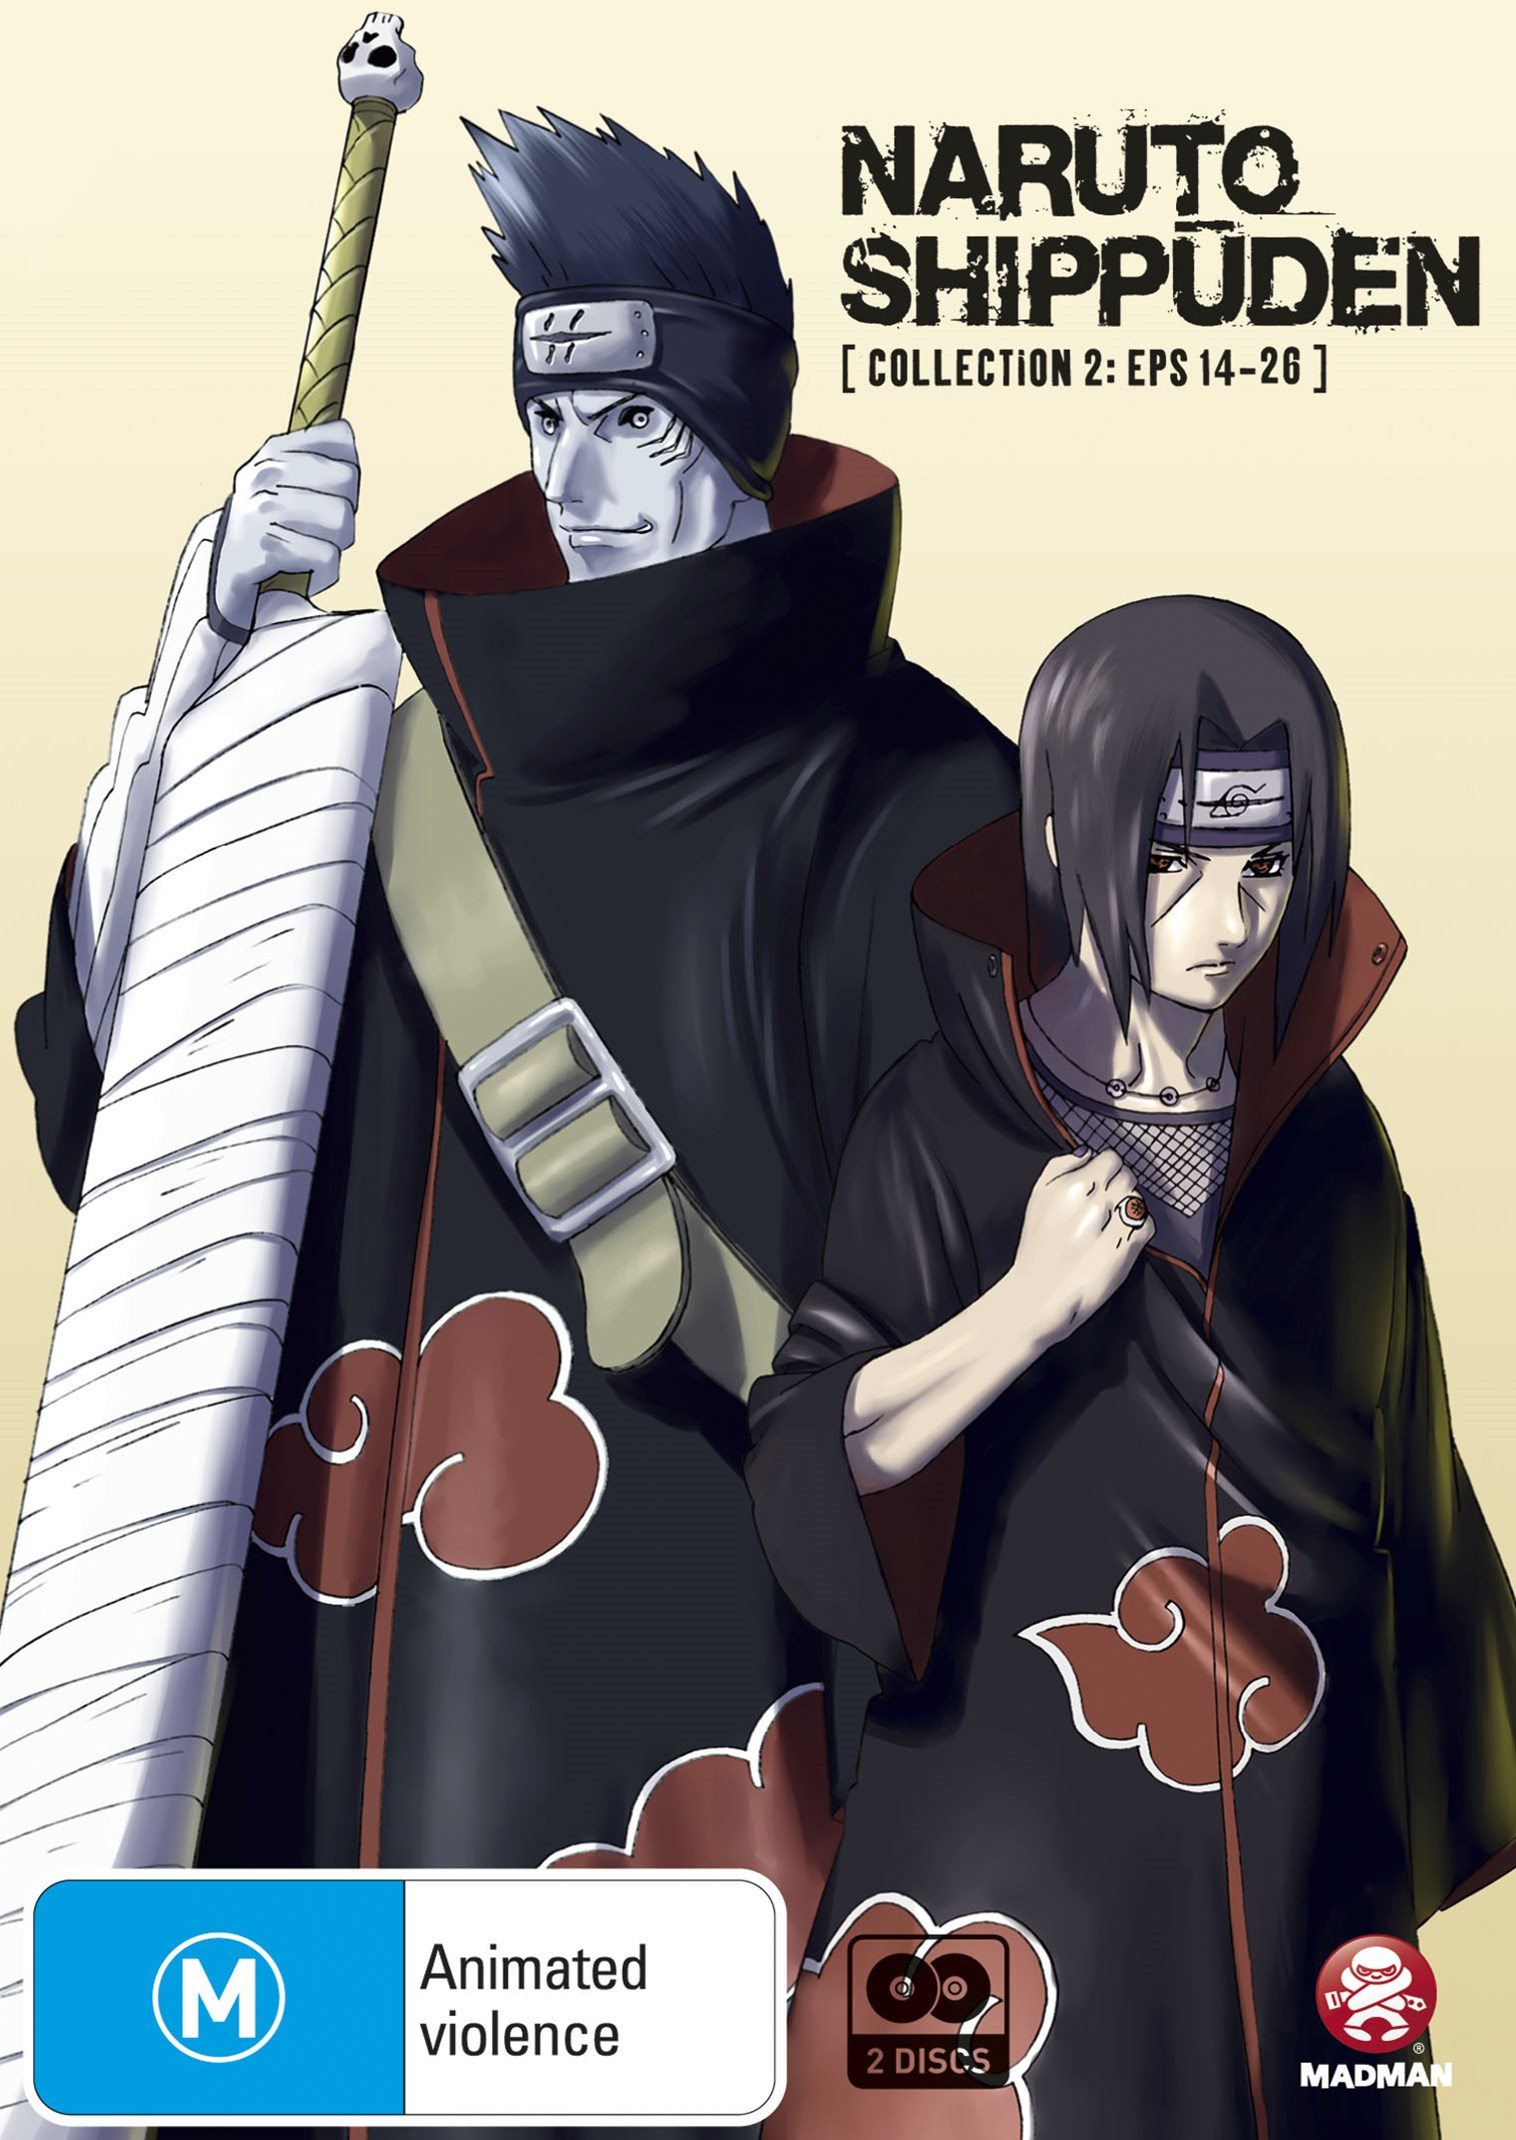 Naruto Shippuden: Collection 2 - Episodes 14 to 26